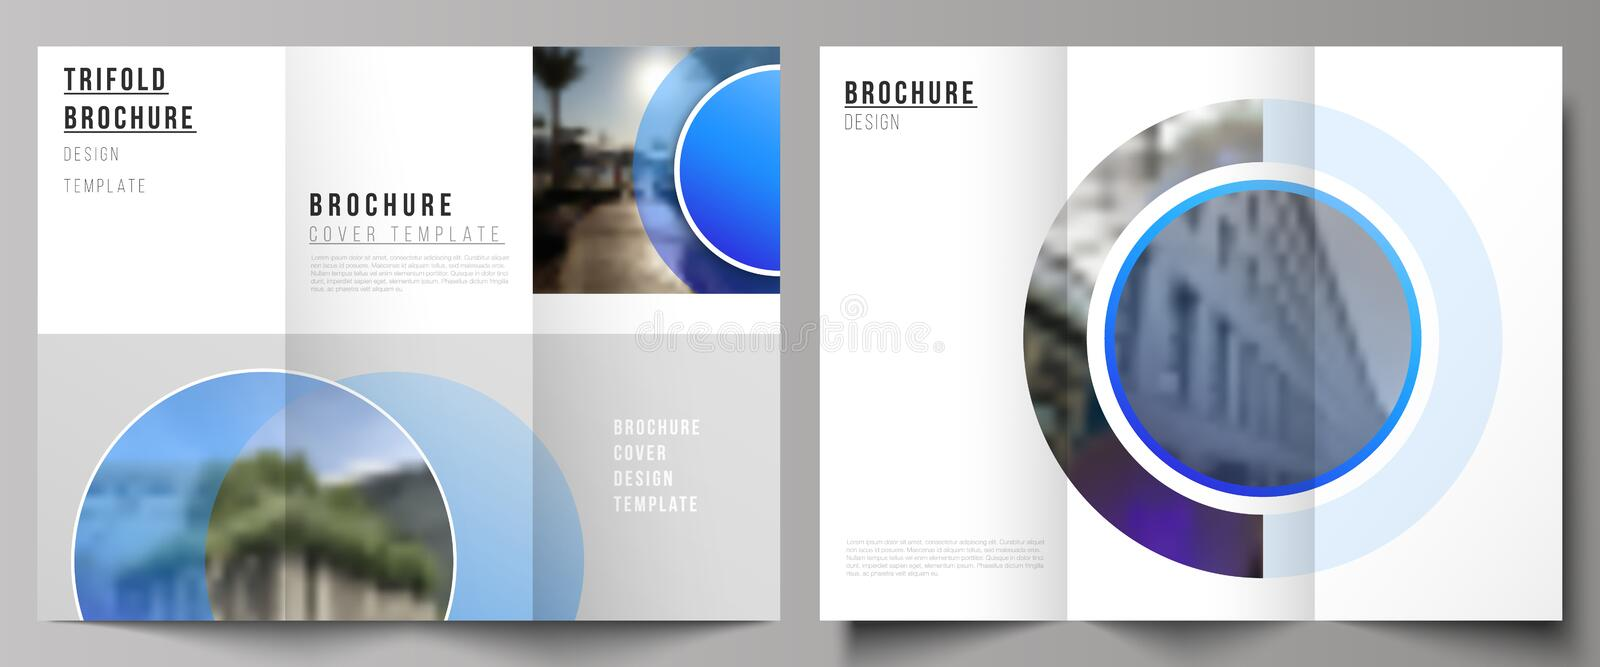 The minimal vector illustration of editable layouts. Modern creative covers design templates for trifold brochure or. Flyer. Creative modern blue background vector illustration